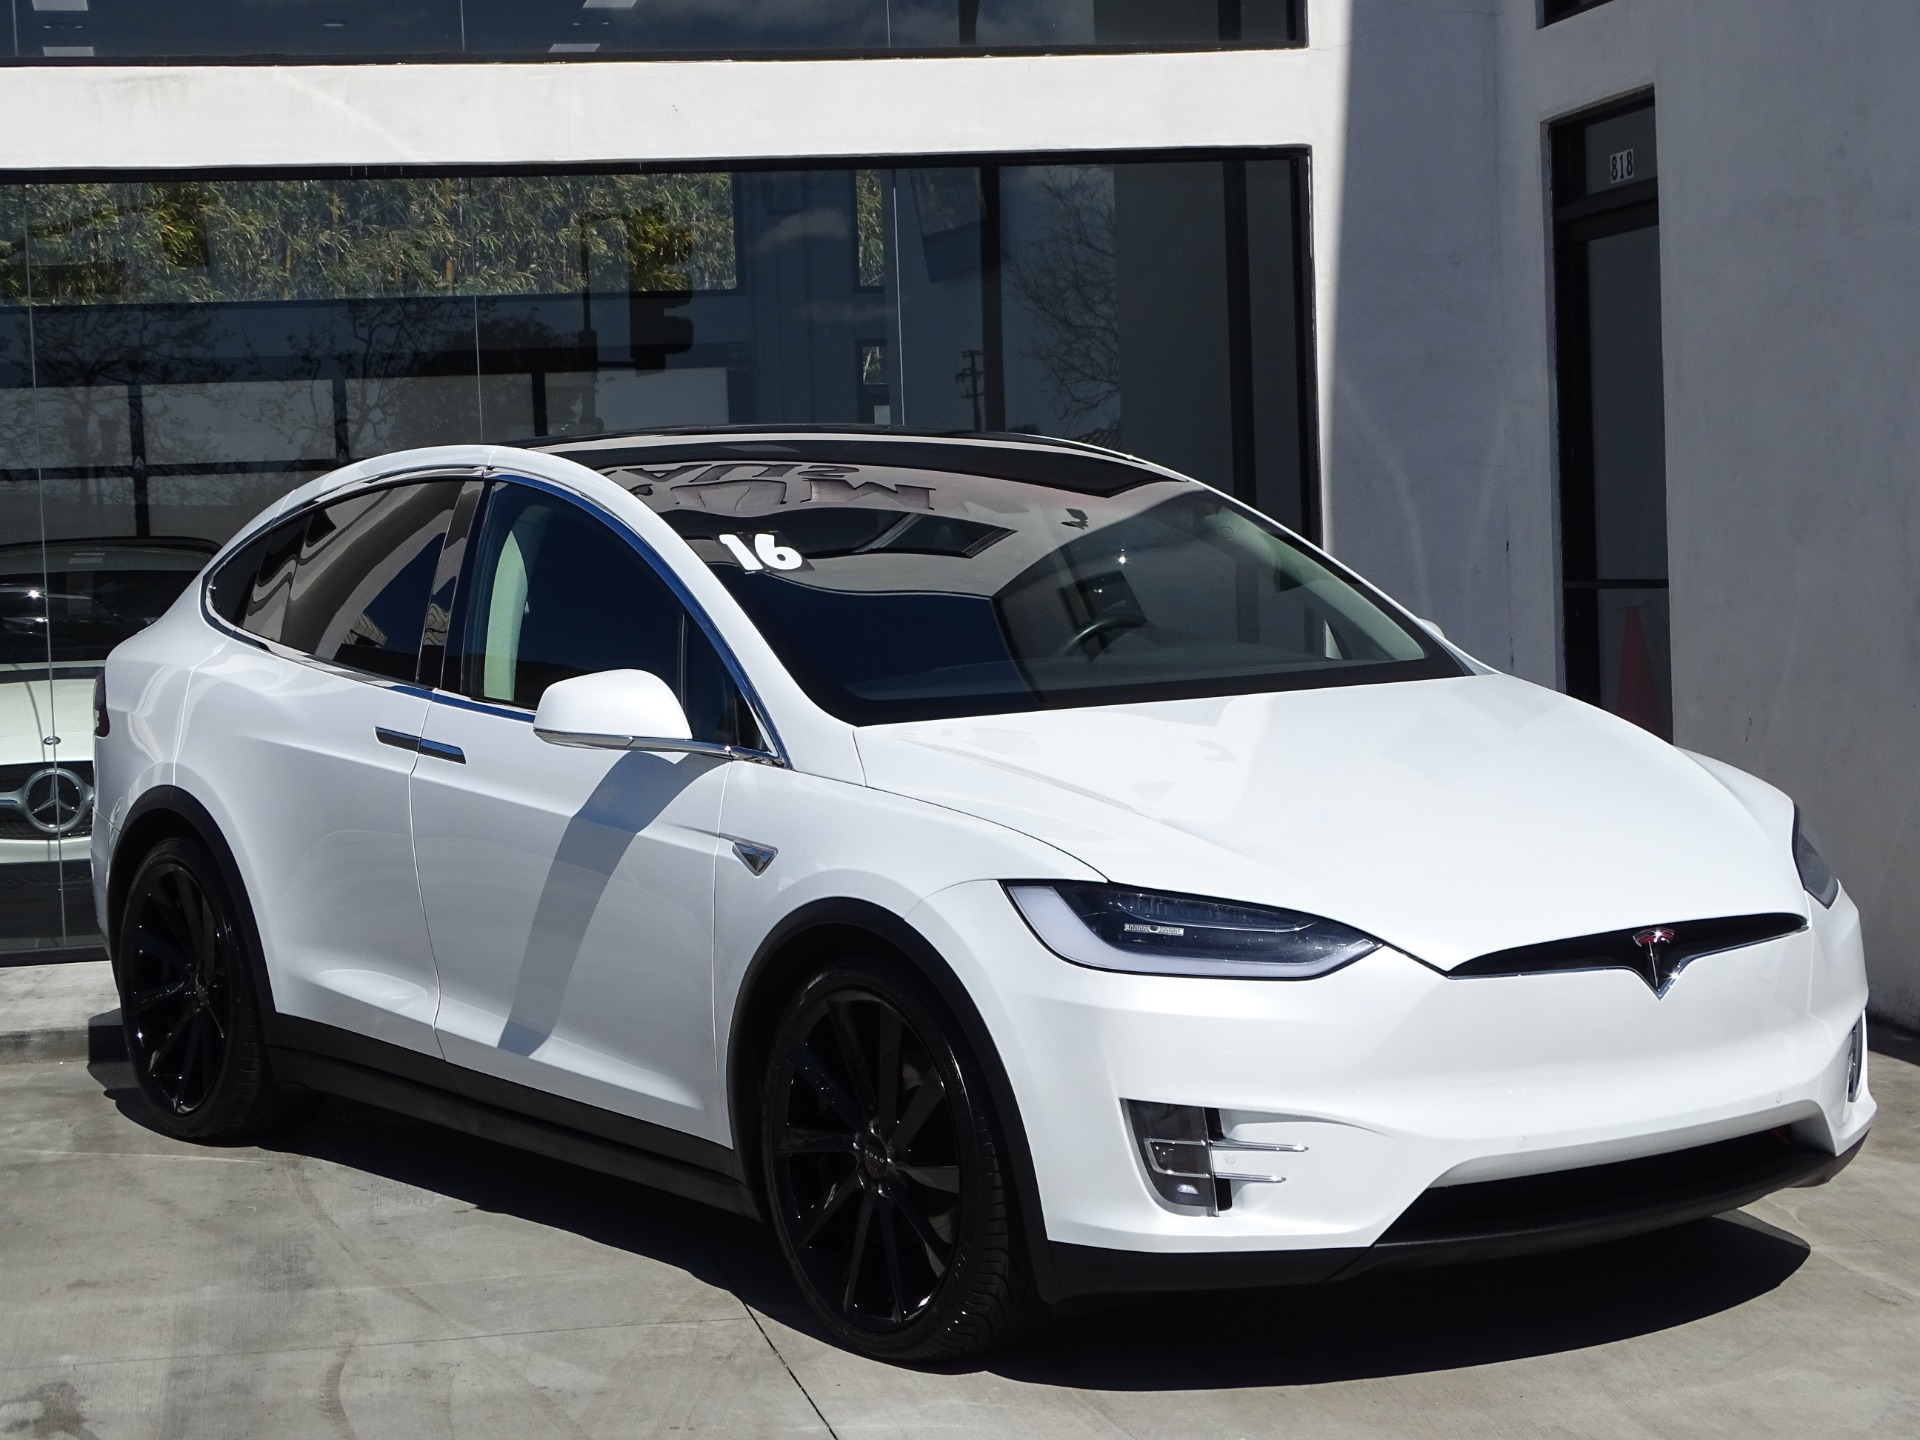 Used Suv For Sale Near Me >> 2016 Tesla Model X 90D Stock # 6435 for sale near Redondo ...